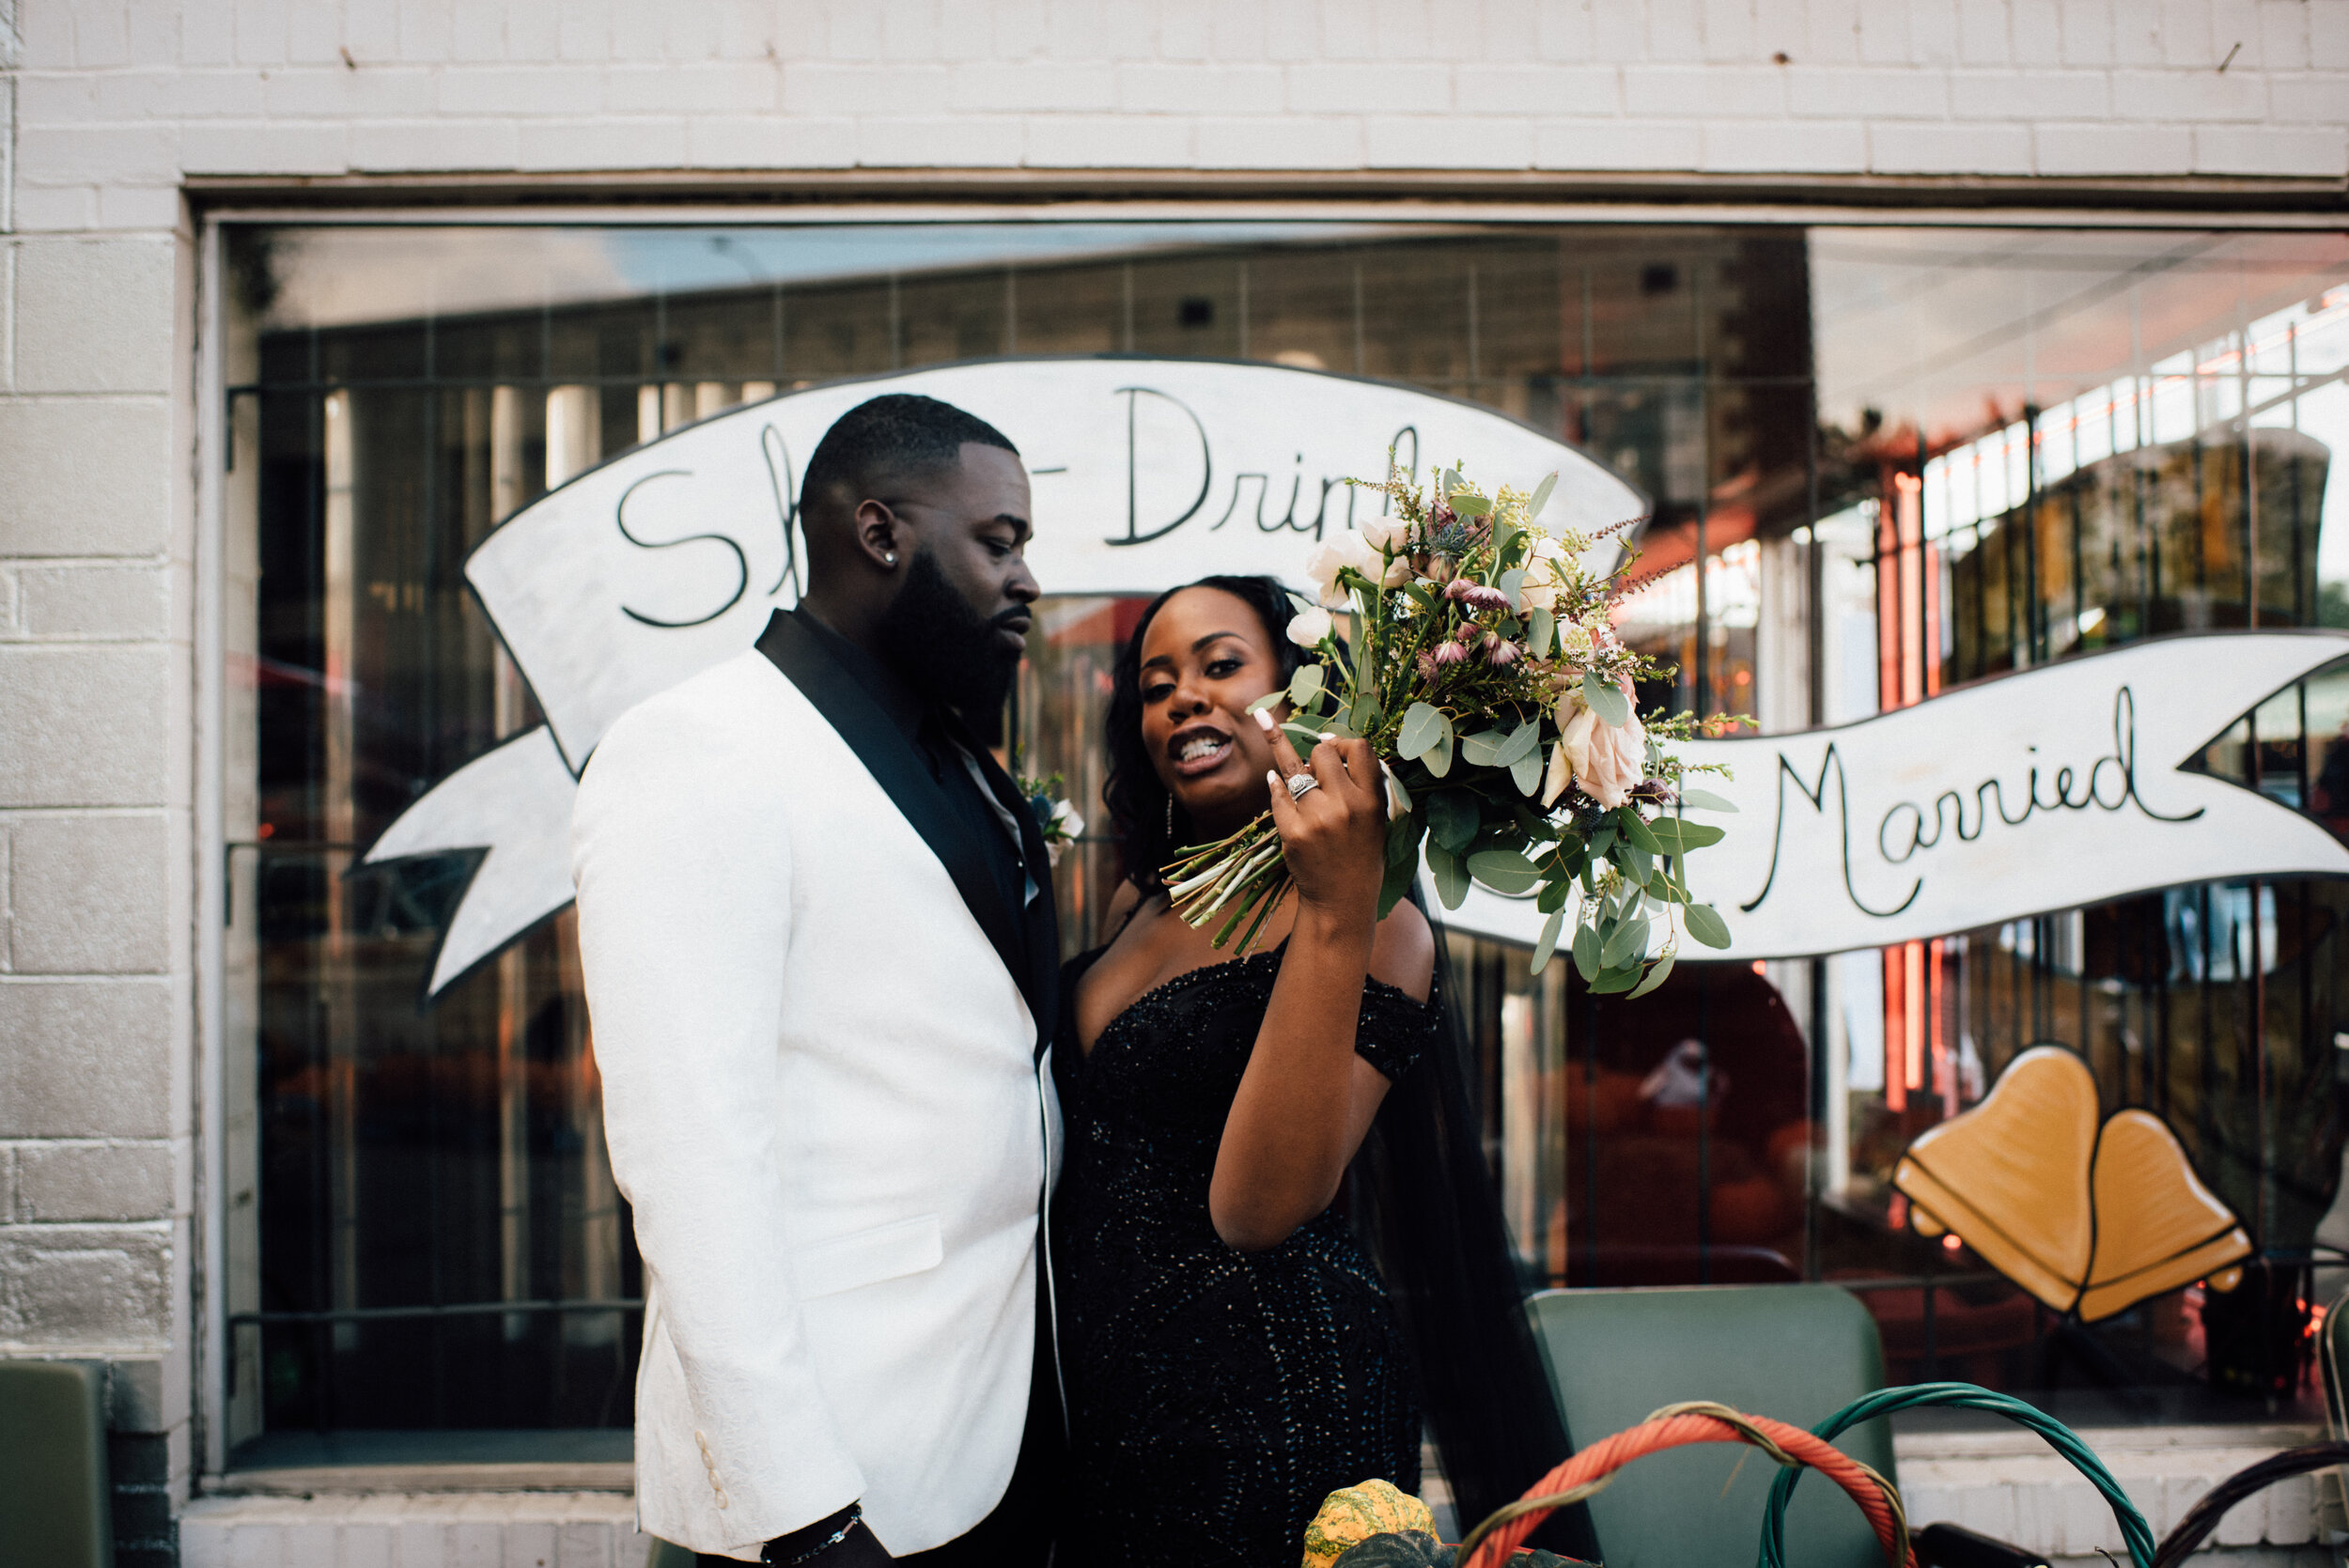 Asheville Elopement - Haiku I Do Wedding - Asheville Wedding Photographer - Downtown Asheville Wedding - North Carolina Wedding Photographer